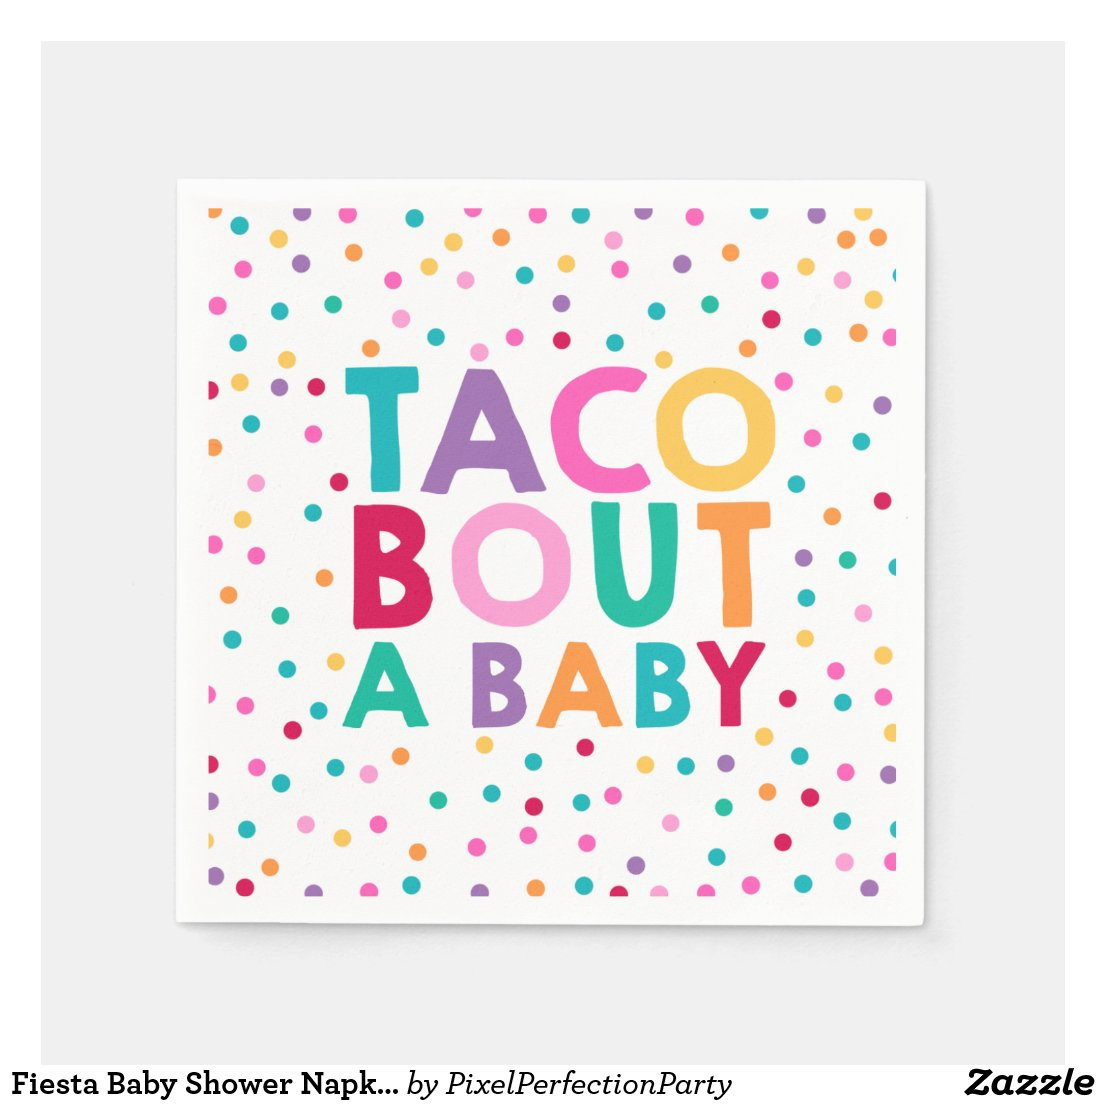 Fiesta Baby Shower Napkin Taco Bout A Baby Party